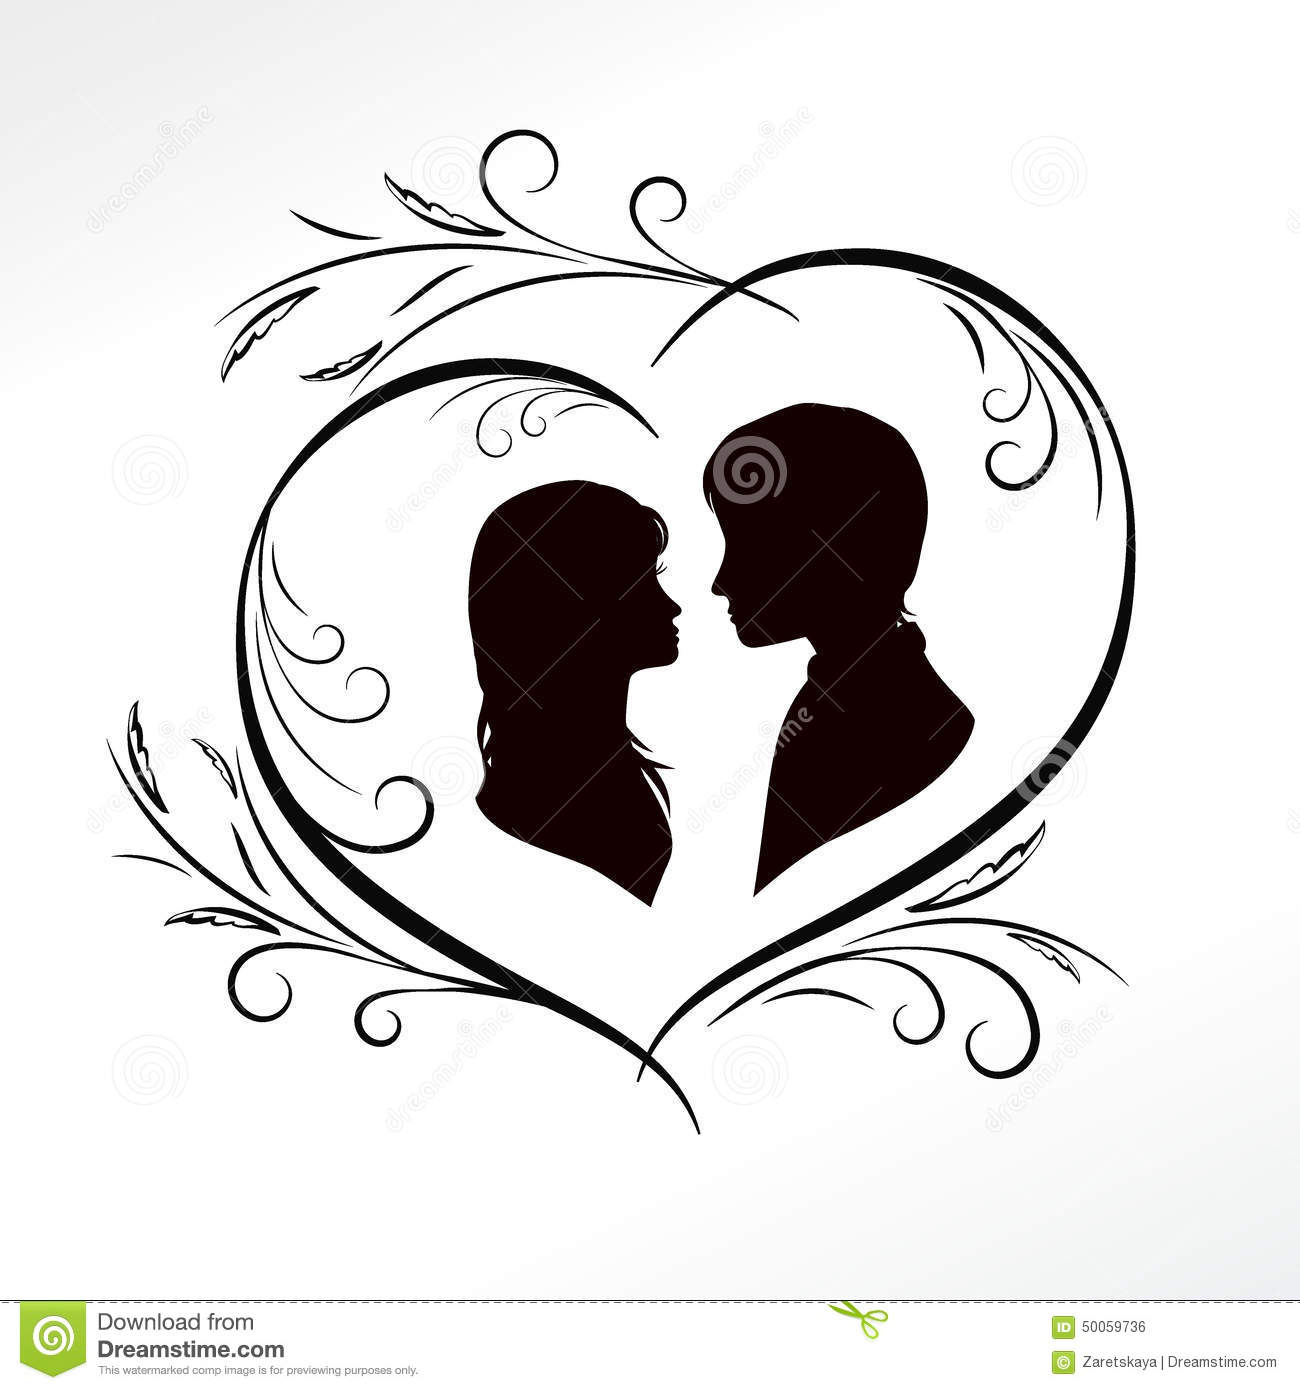 Love design stock illustration image 50059736 for Love in design